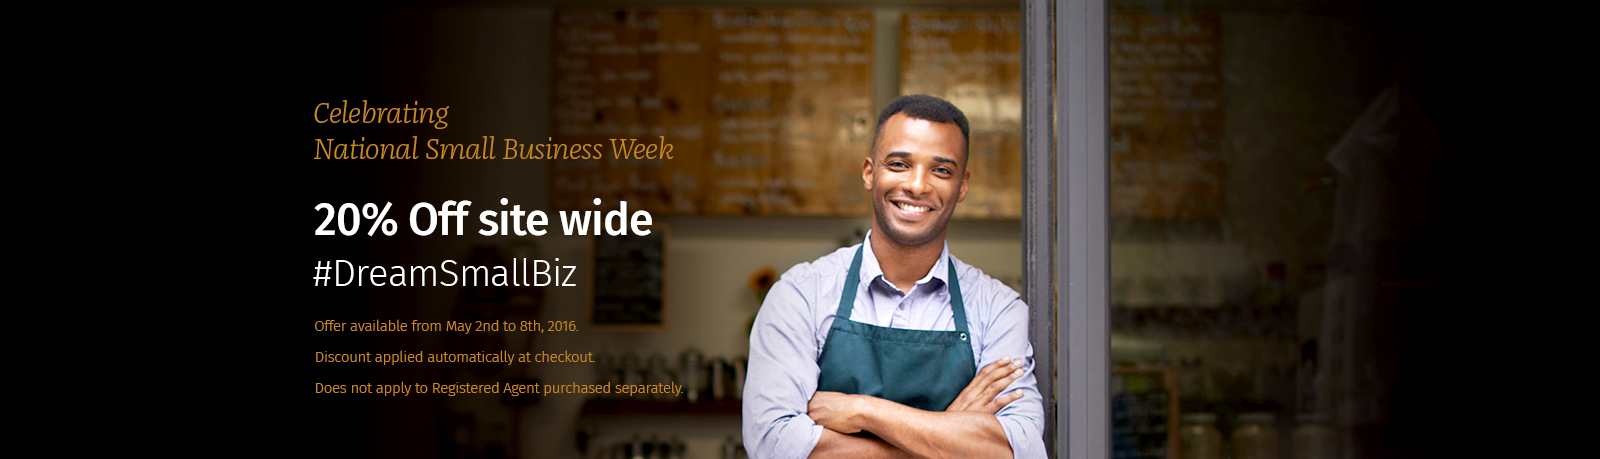 BizFilings celebrates National Small Business Week 2016 with 20% off site wide.